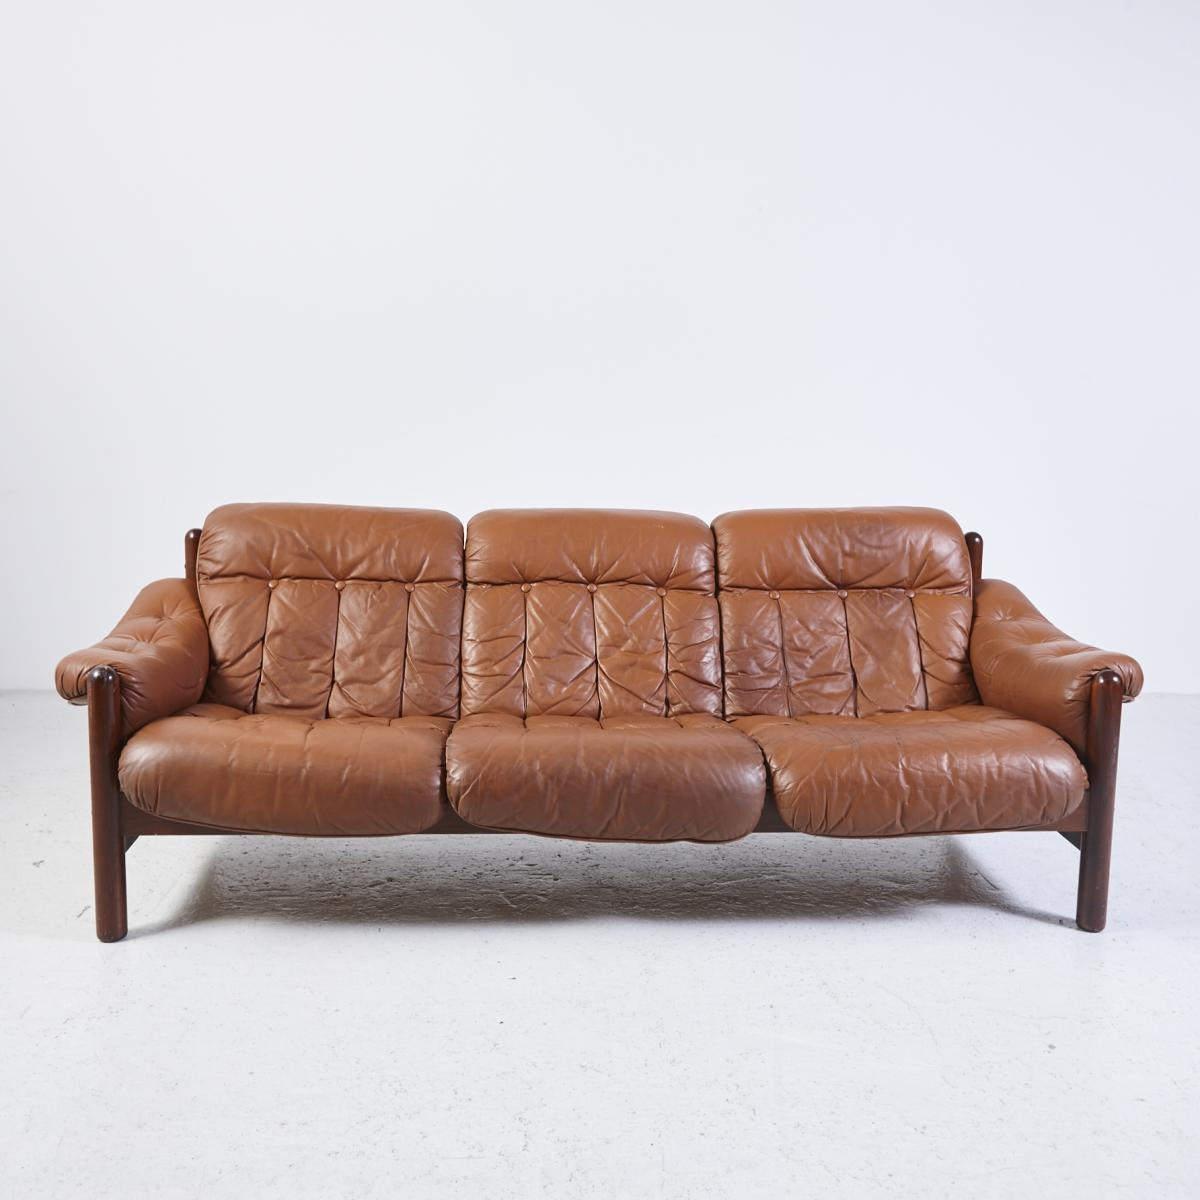 Vintage 3 Seater Leather Sofa With Teak Frame For Sale At Pamono With Regard To 3 Seater Leather Sofas (Image 19 of 20)